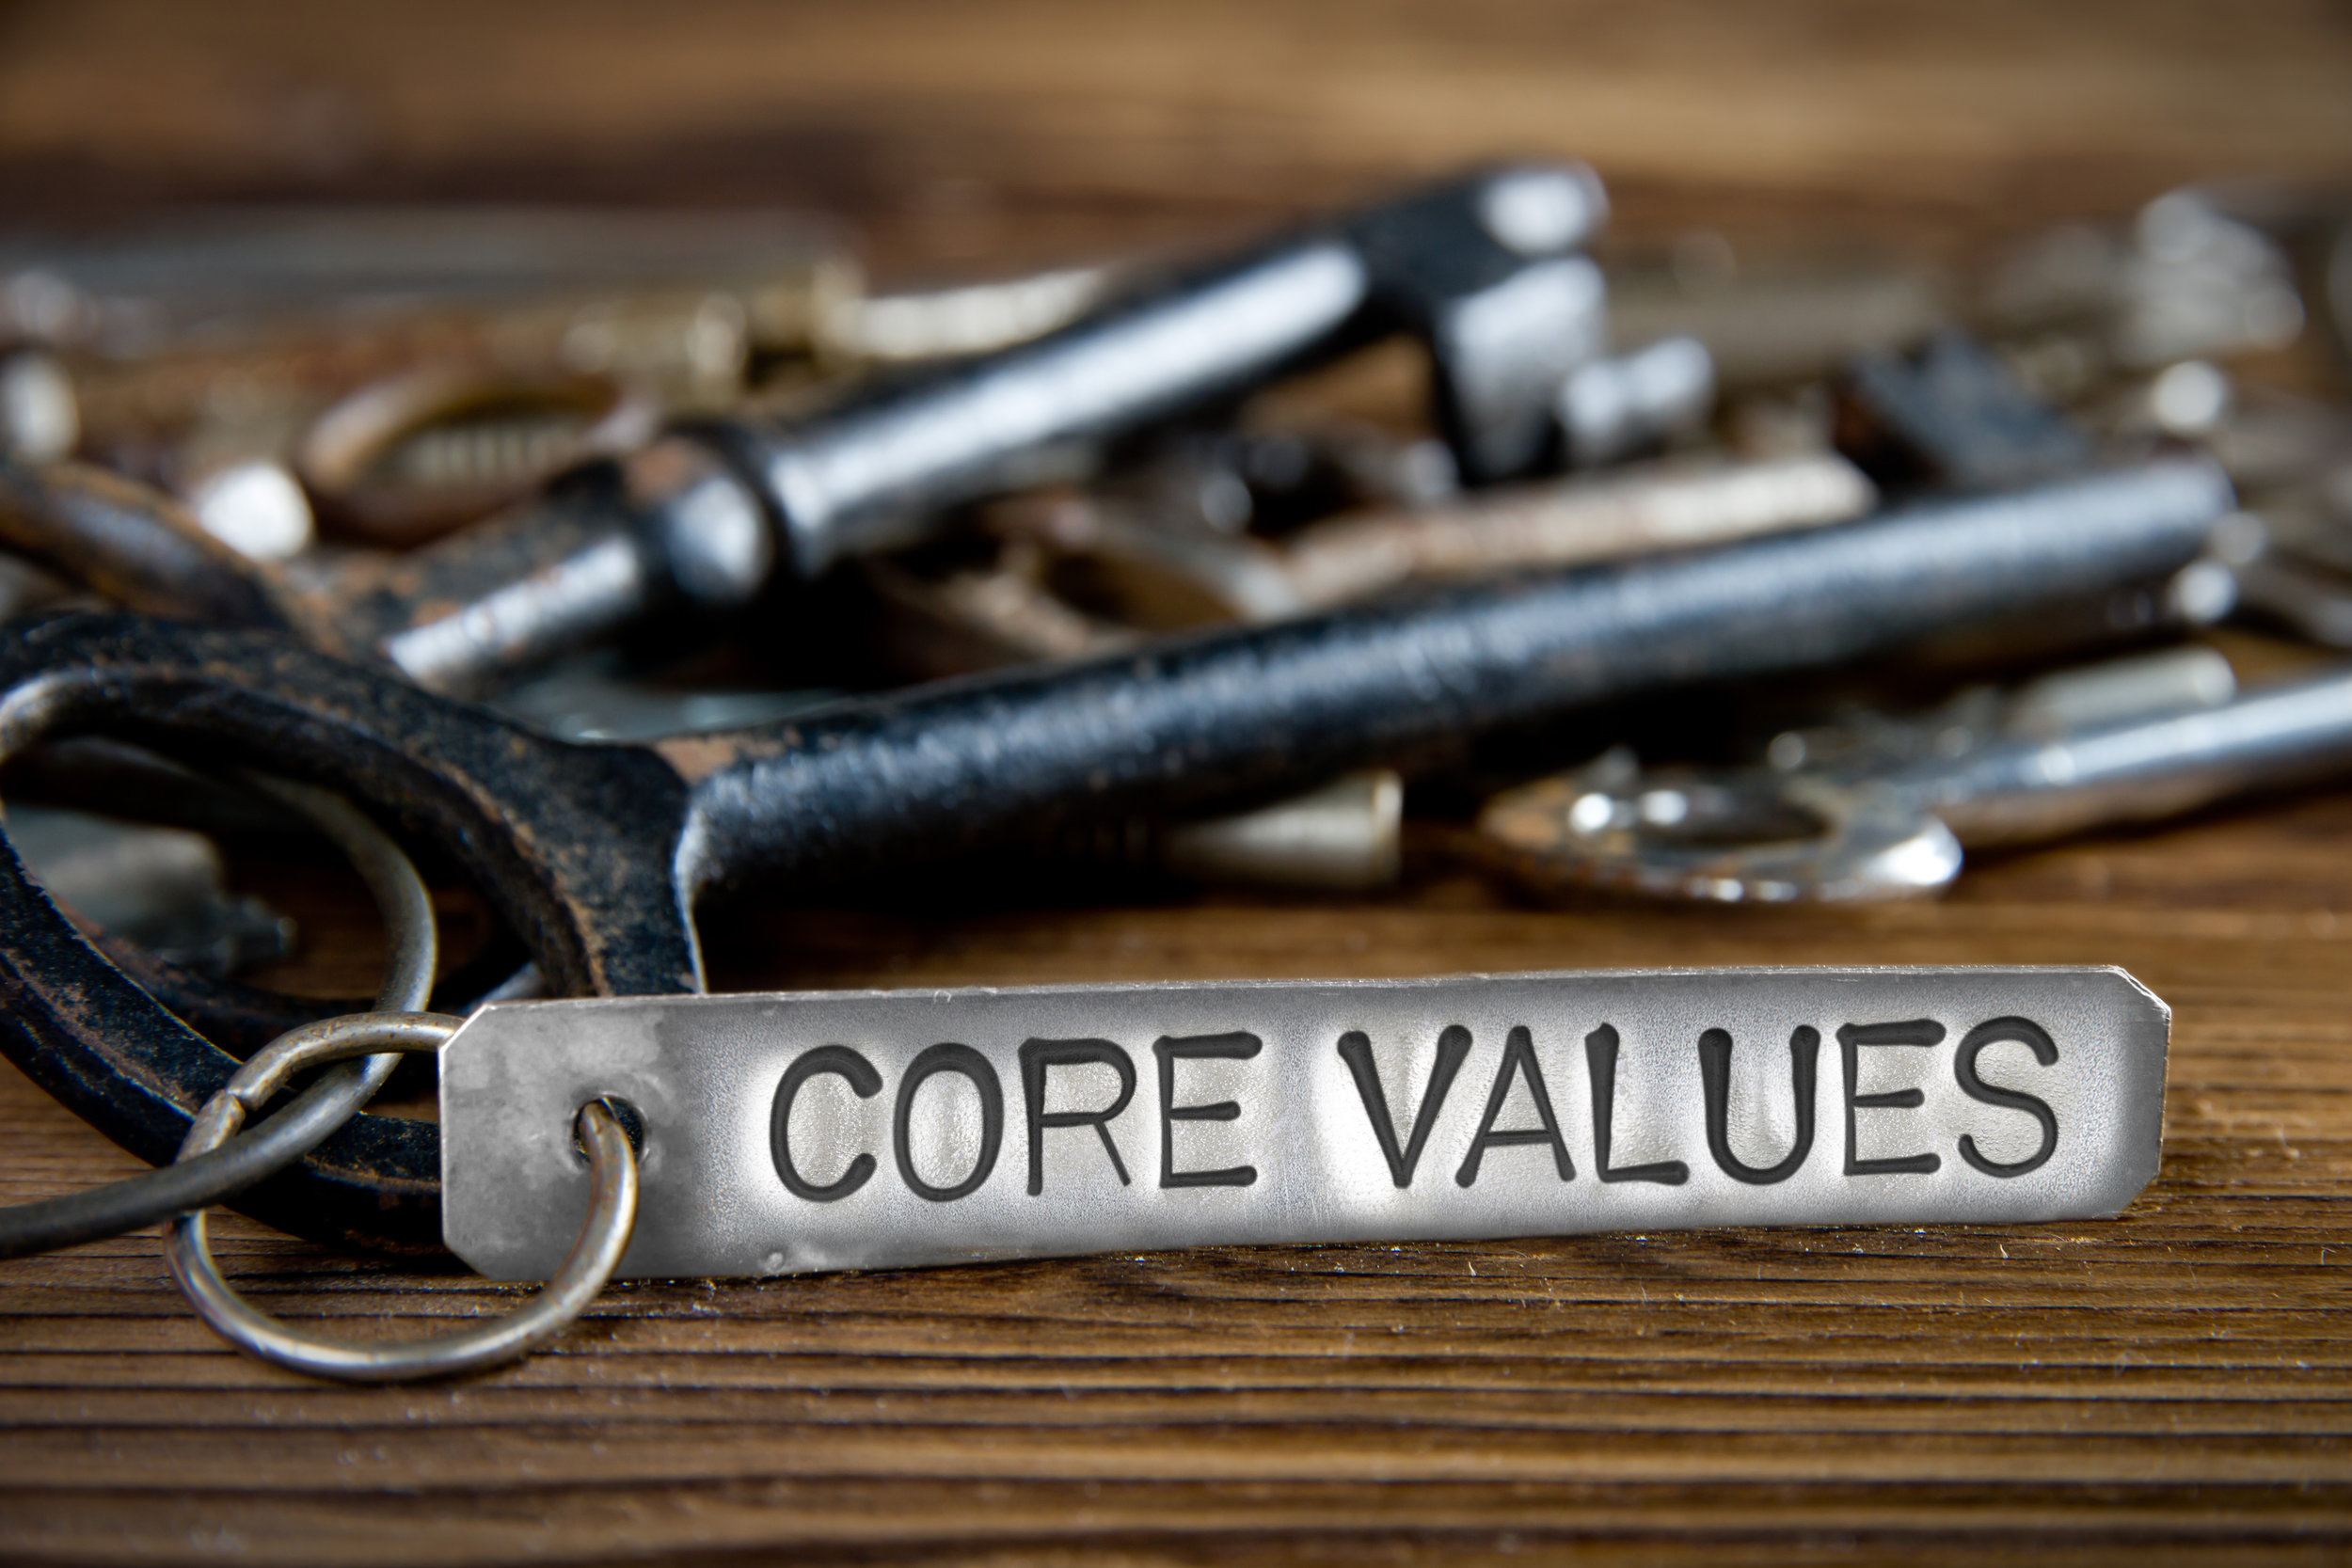 CORE VALUES IN ACTION -